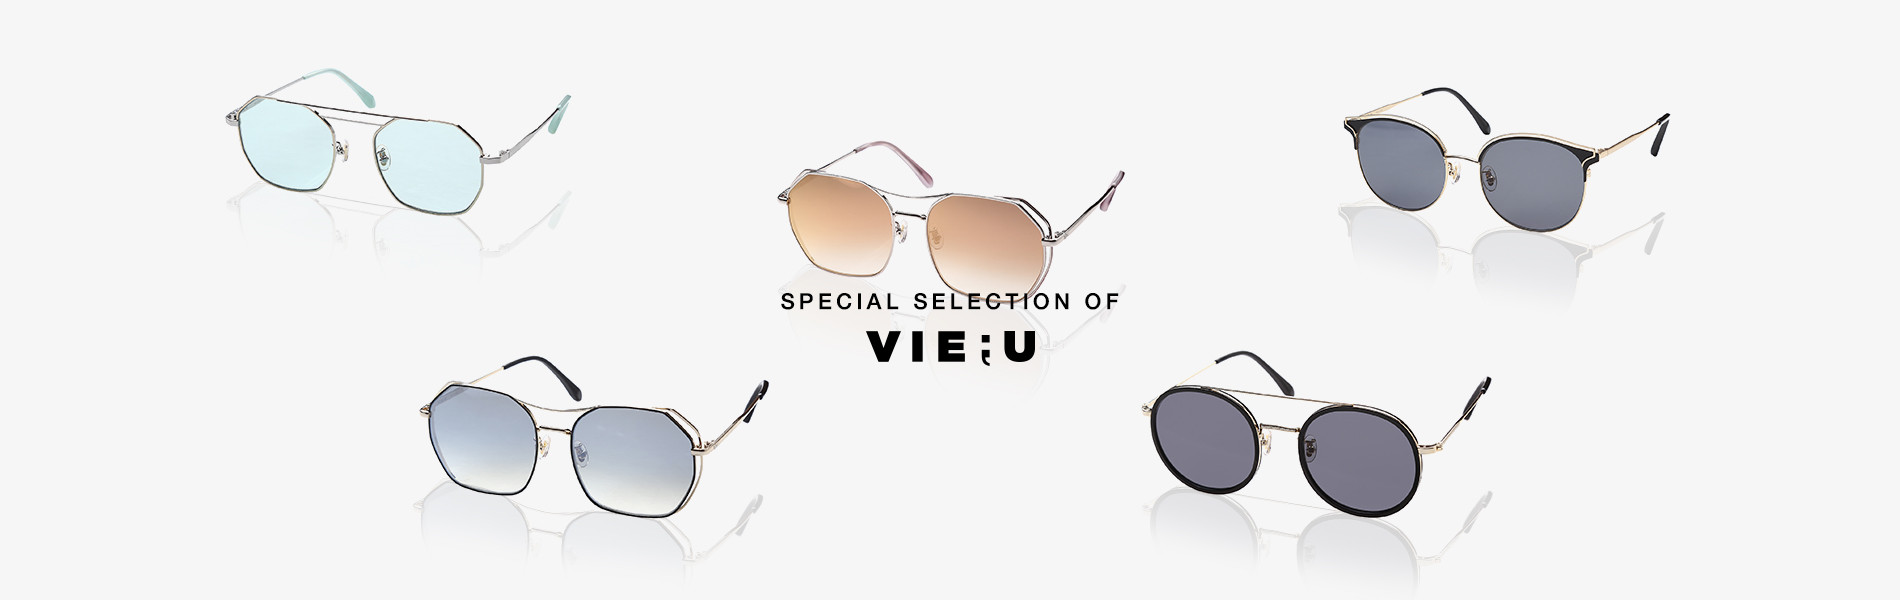 SPECIAL SELECTION OF VIEU